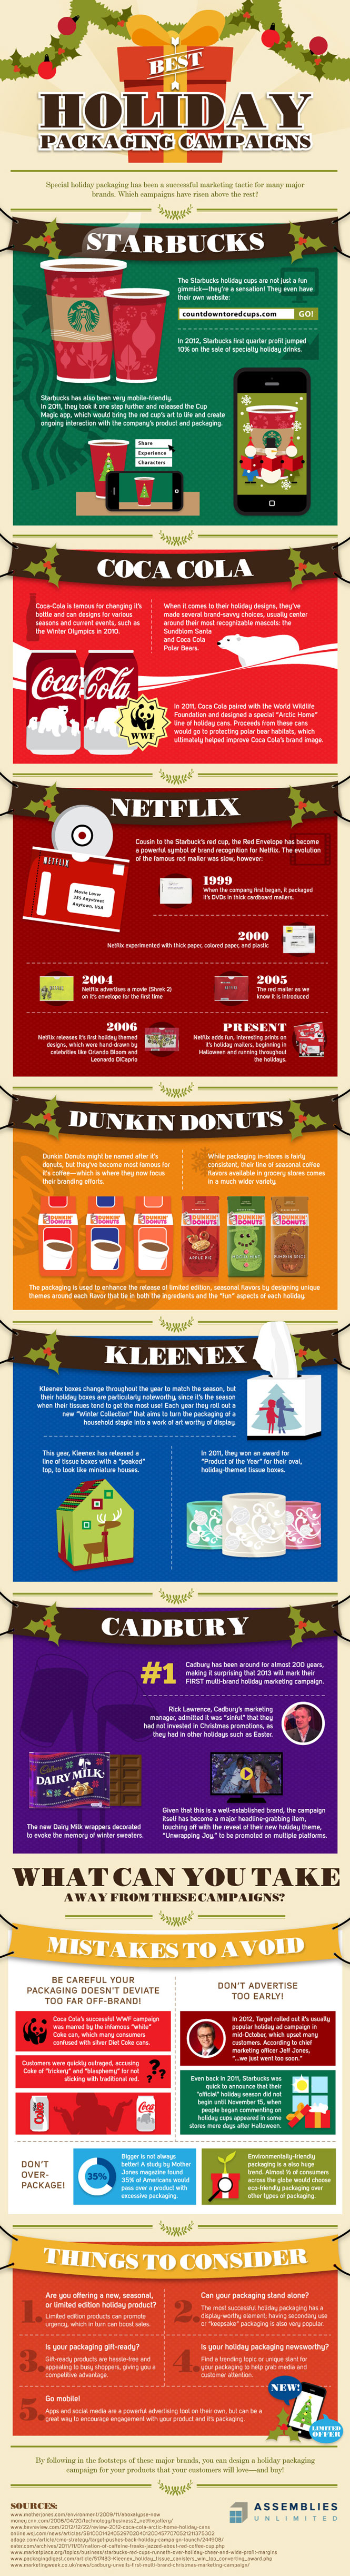 Holiday Packaging Infographic